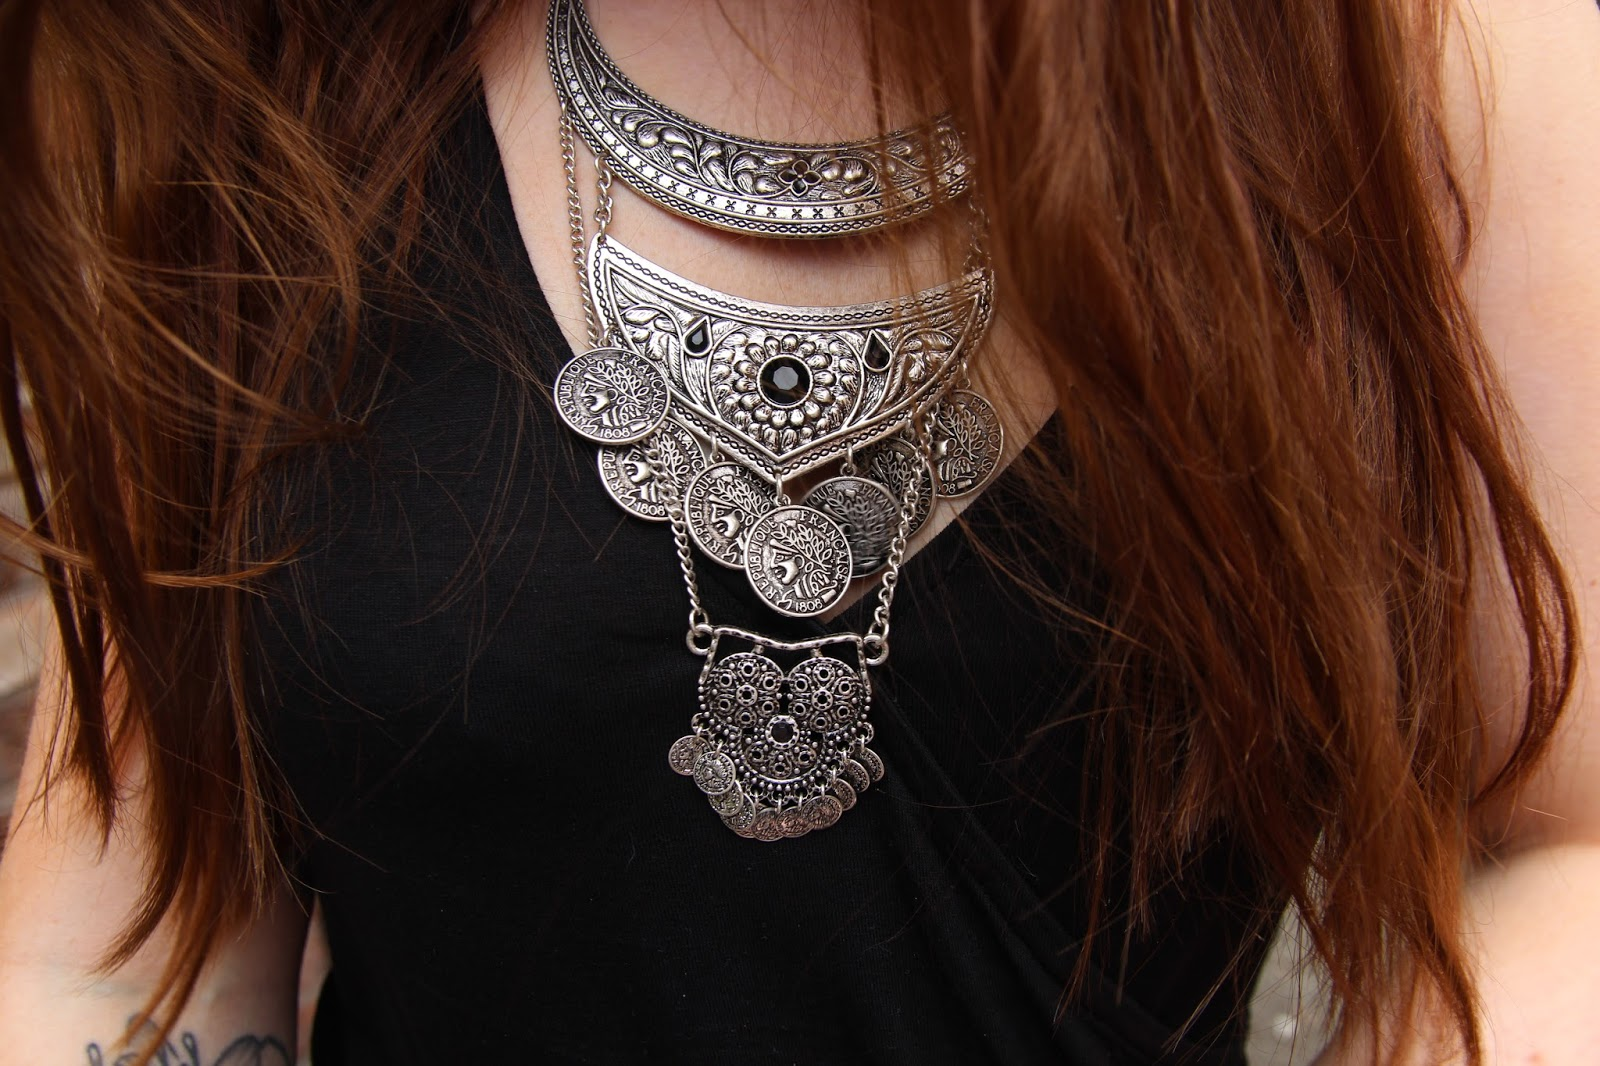 H&M Boho Festival Necklace